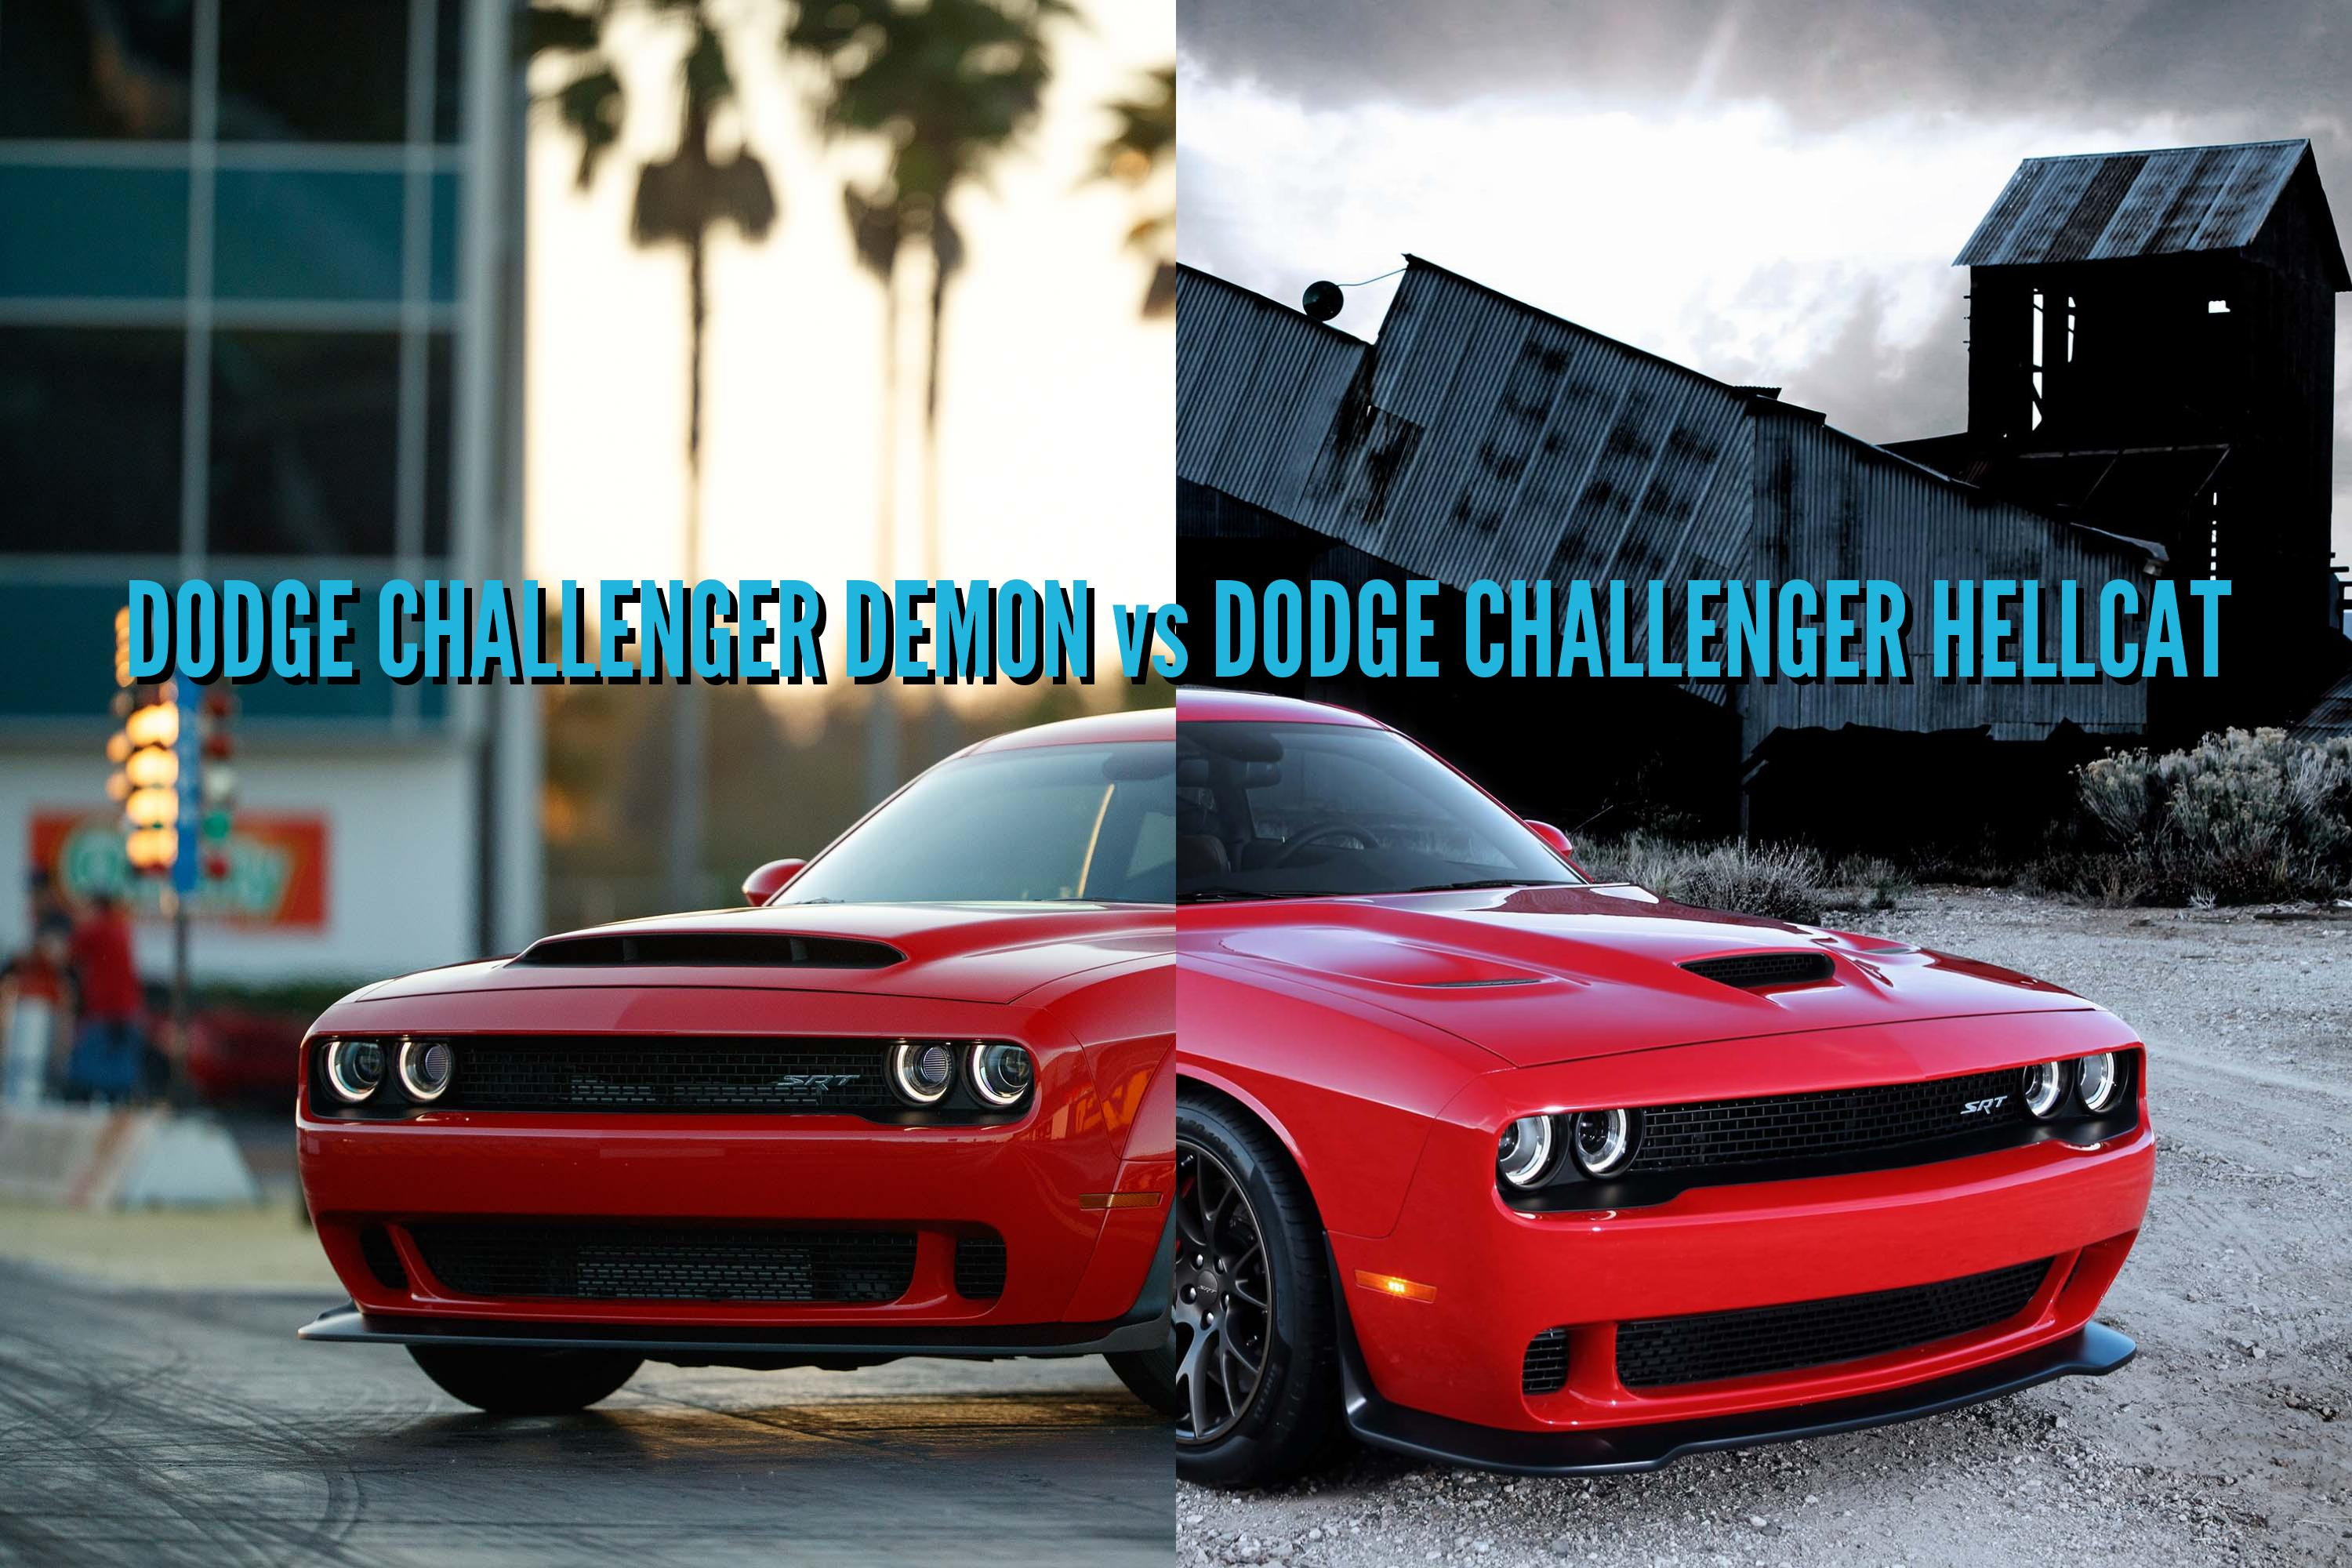 2018 Dodge Challenger Demon Vs Hellcat Comparison Of Differences